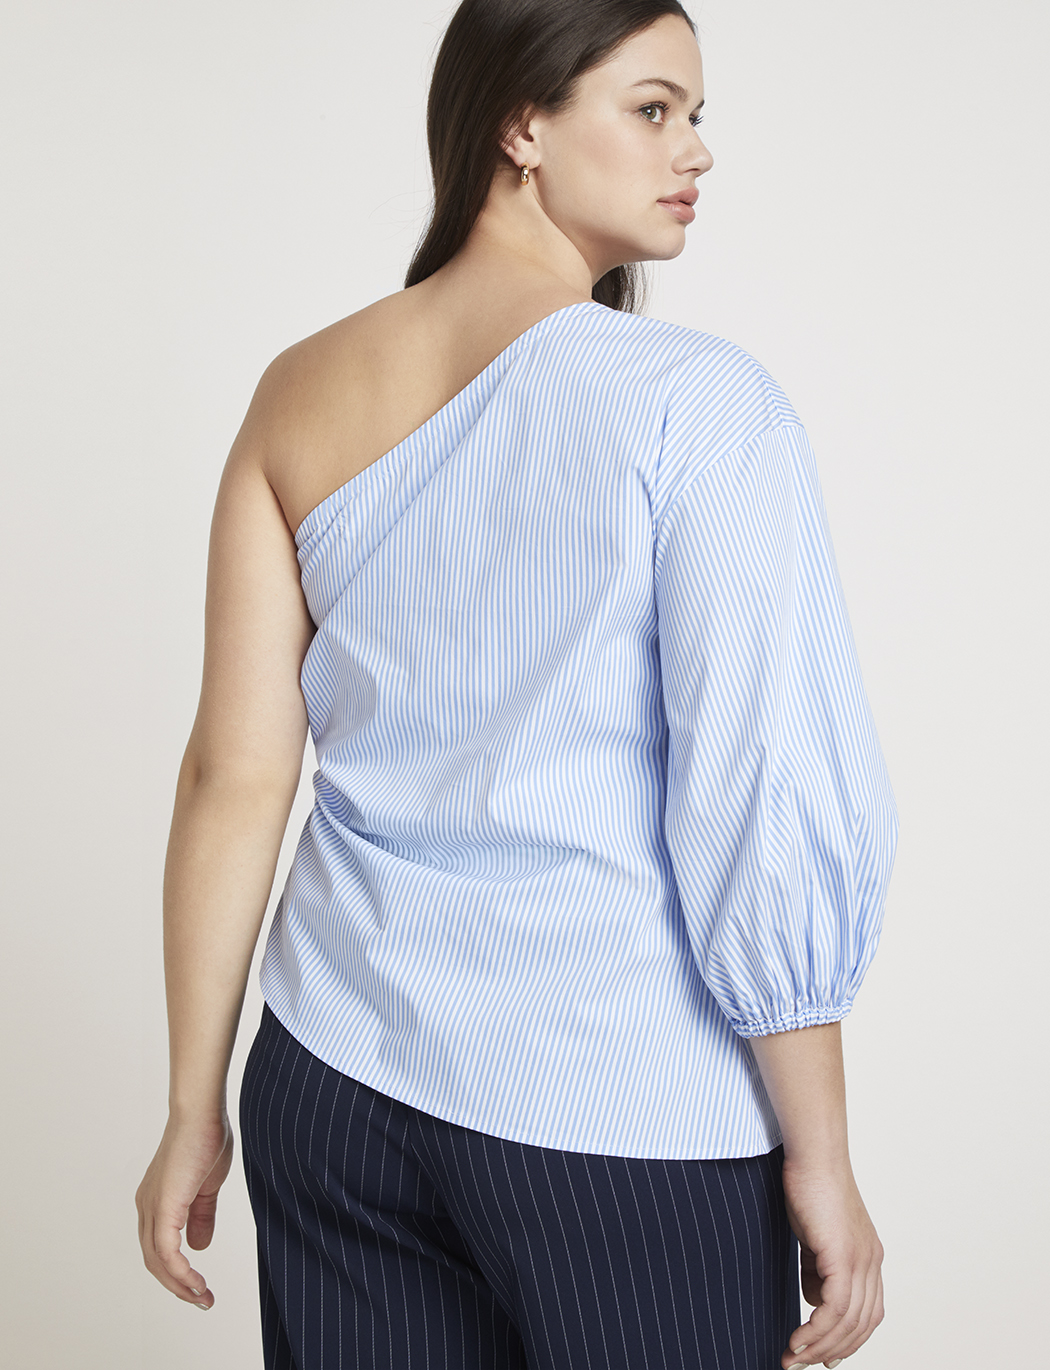 Jason Wu/ELOQUII One Shoulder Puff Sleeve Blouse